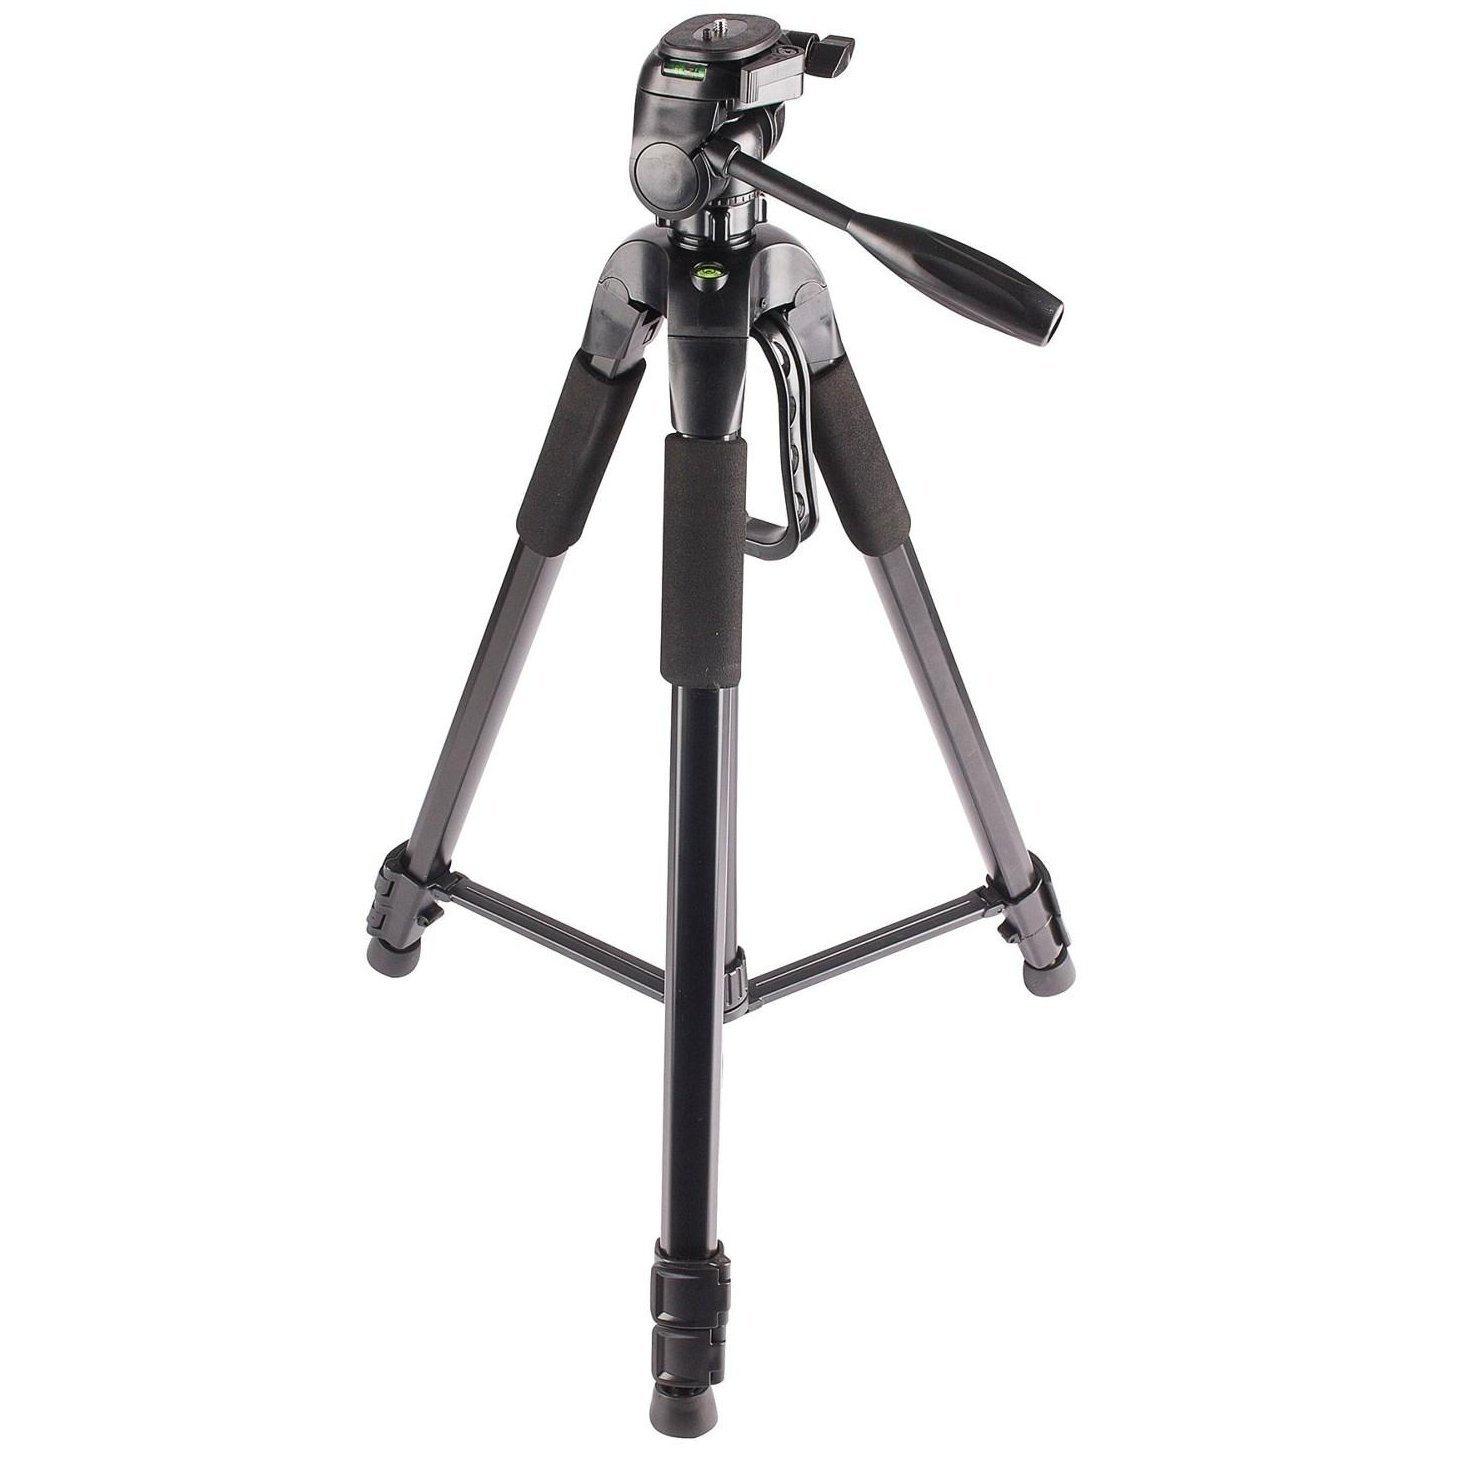 PRO 72-Inch 3-Way Panhead Tilt Motion Built in Bubble Leveling Tripod with Soft Carrying Case and Monopod for DSLR Cameras